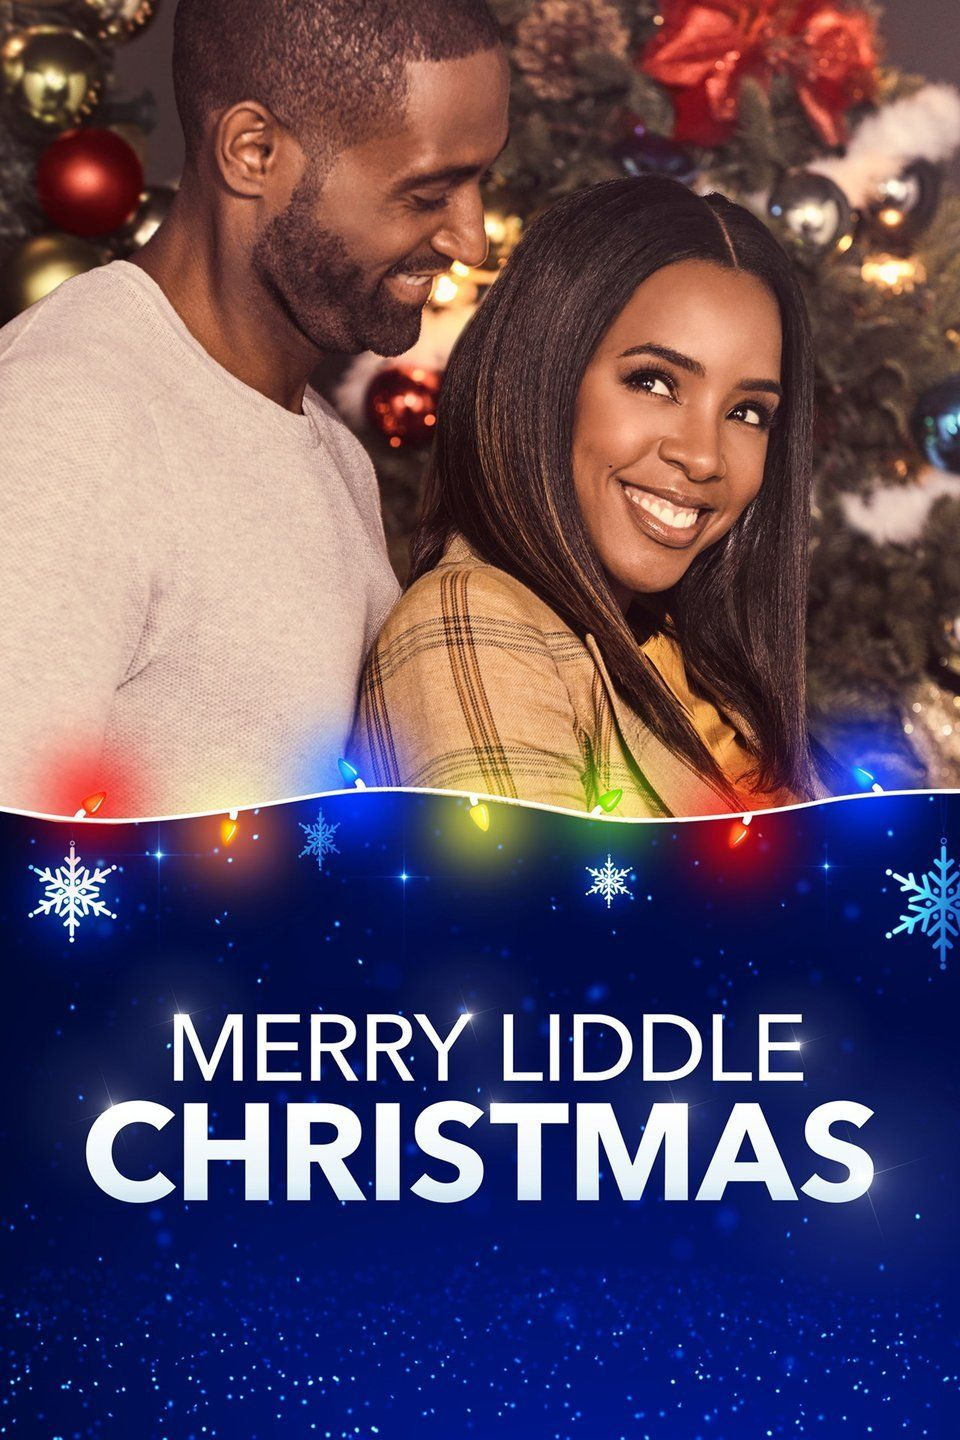 Merry Liddle Christmas Christmas movies, Movies, Great